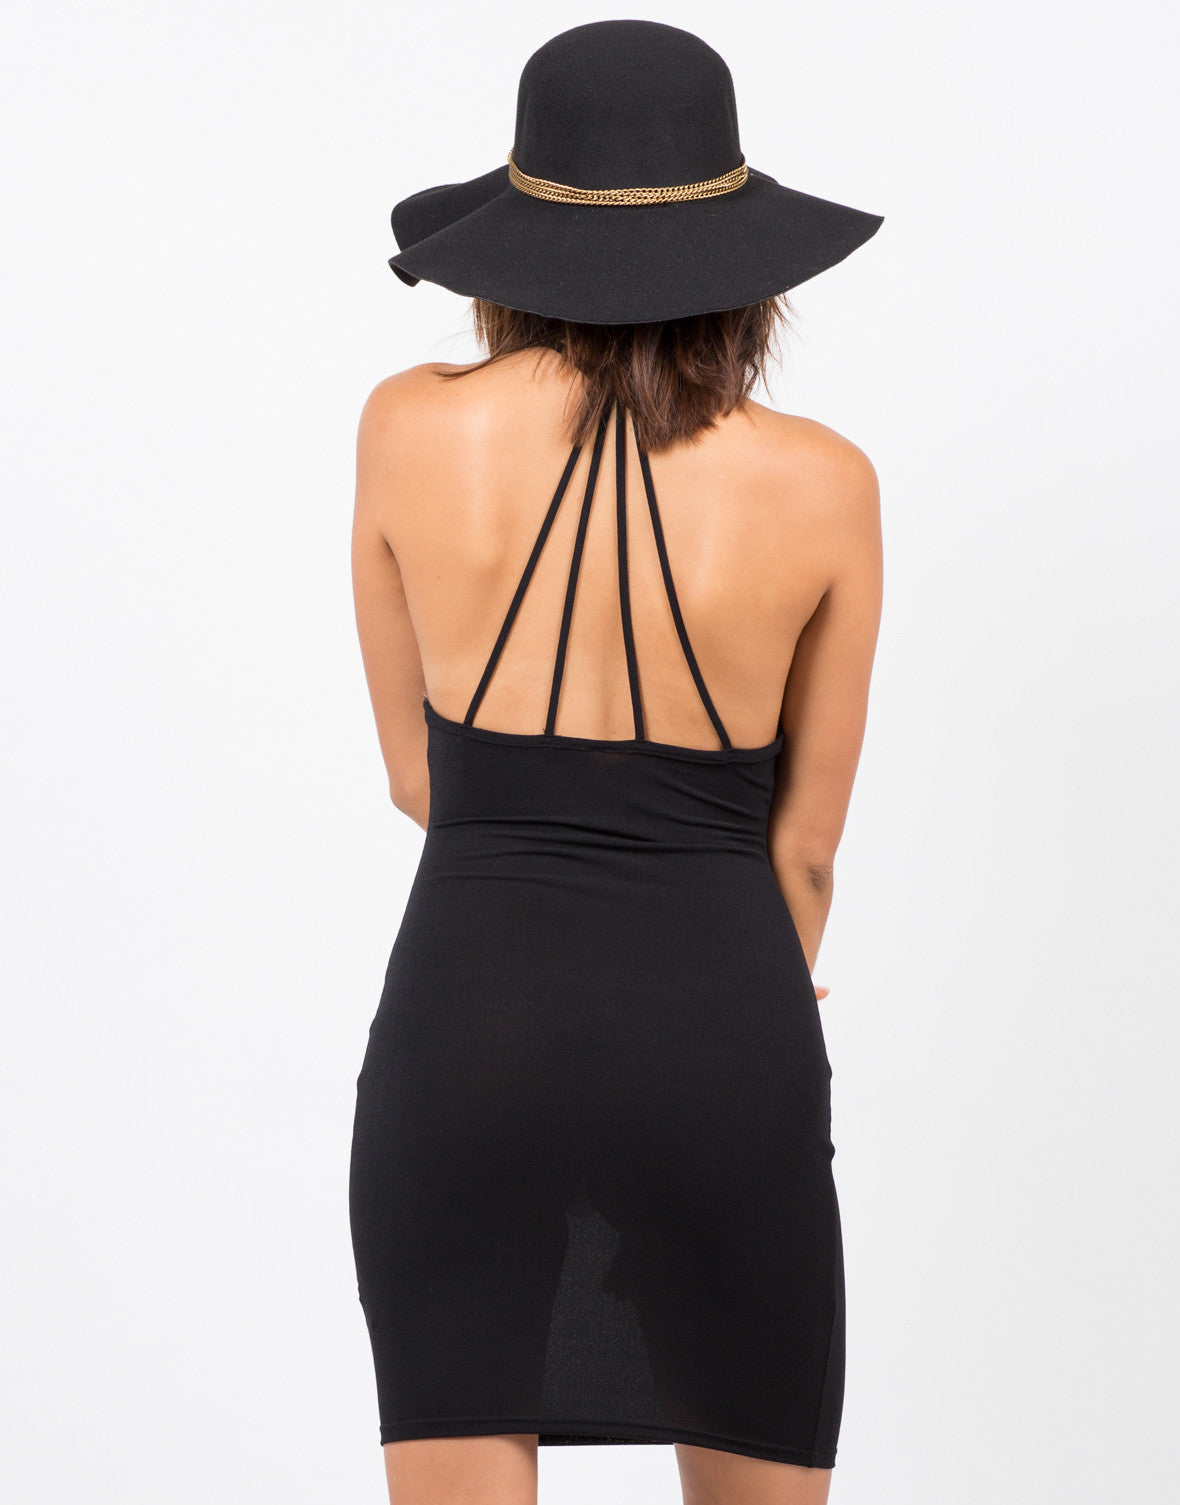 Back View of Simple Strappy Dress